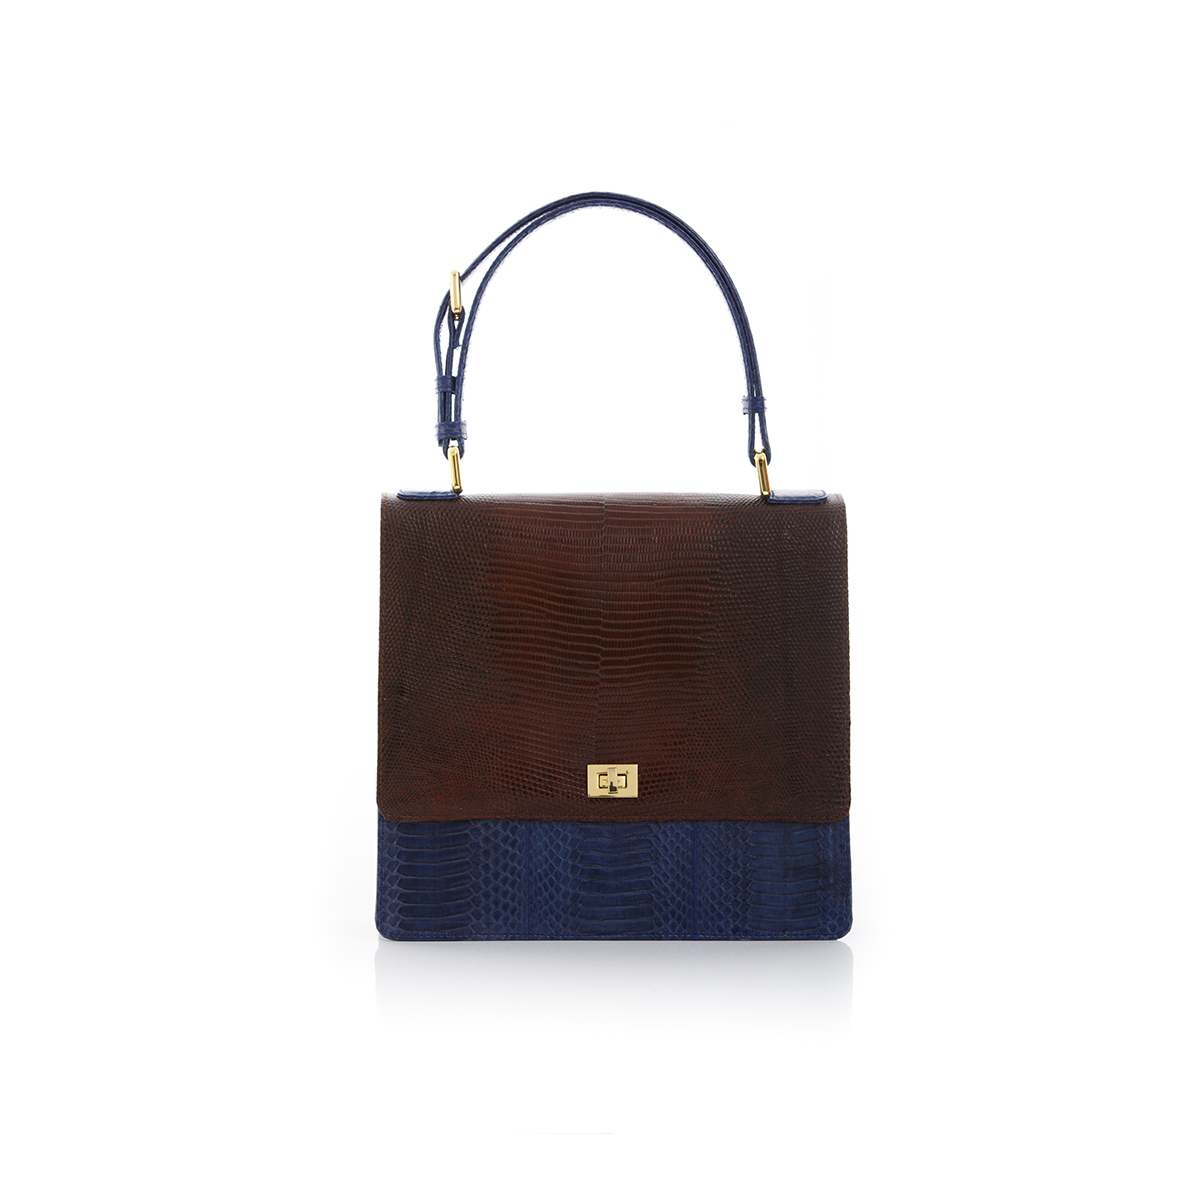 Top Handle Bag TADAH Brown Lizard and Navy Cobra